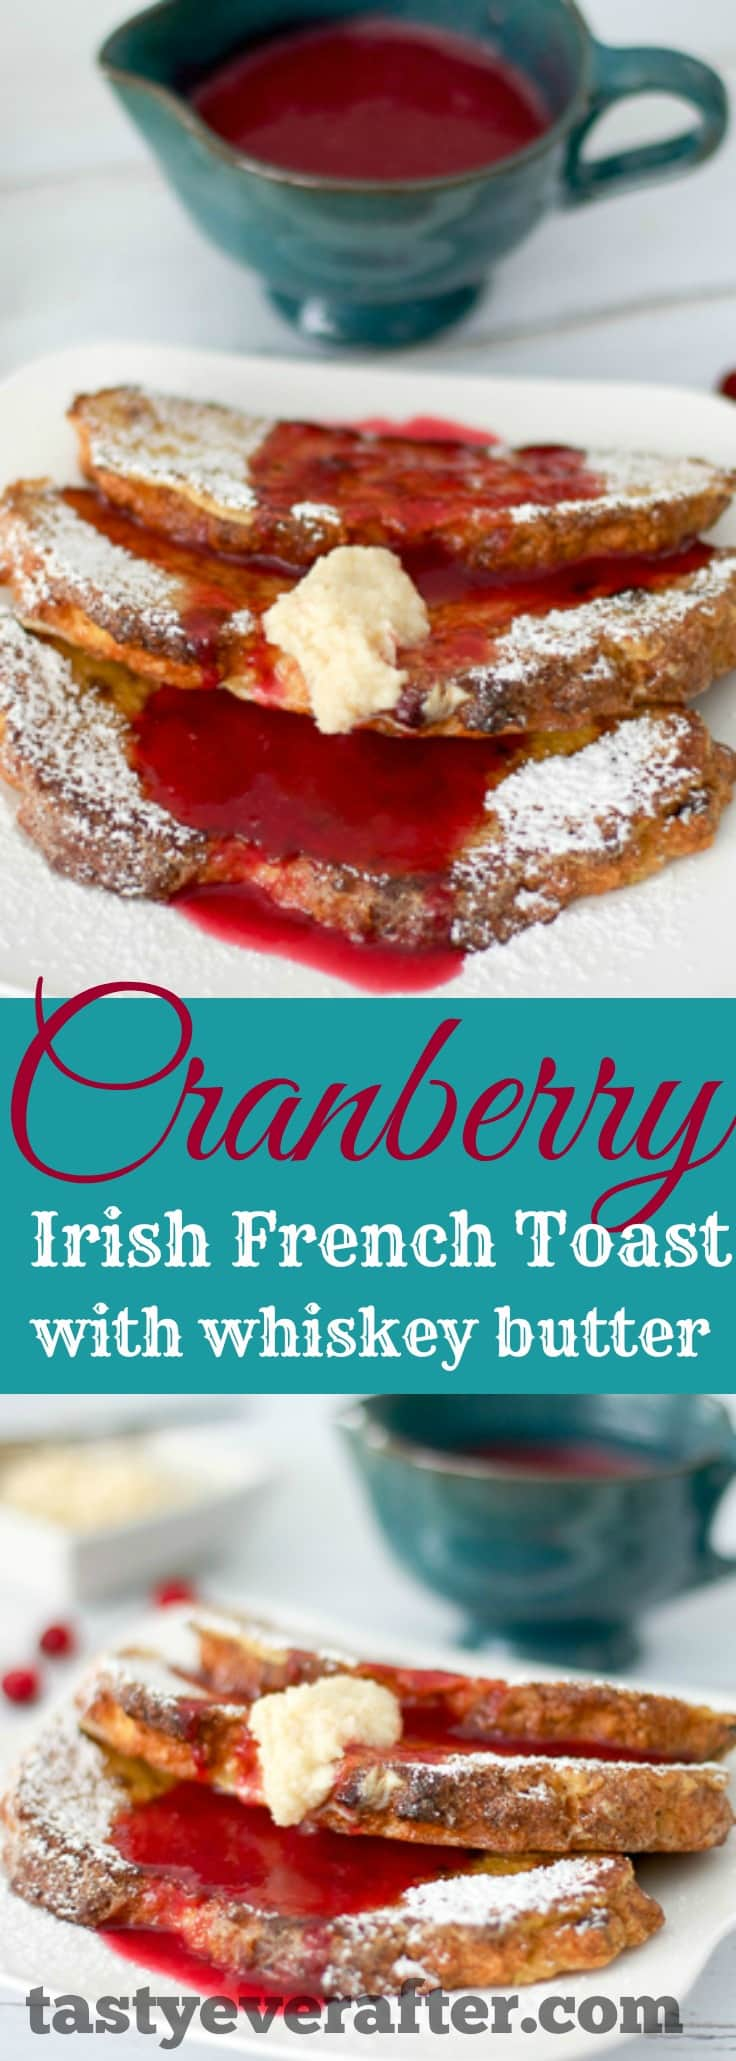 Cranberry Irish French Toast with whiskey butter